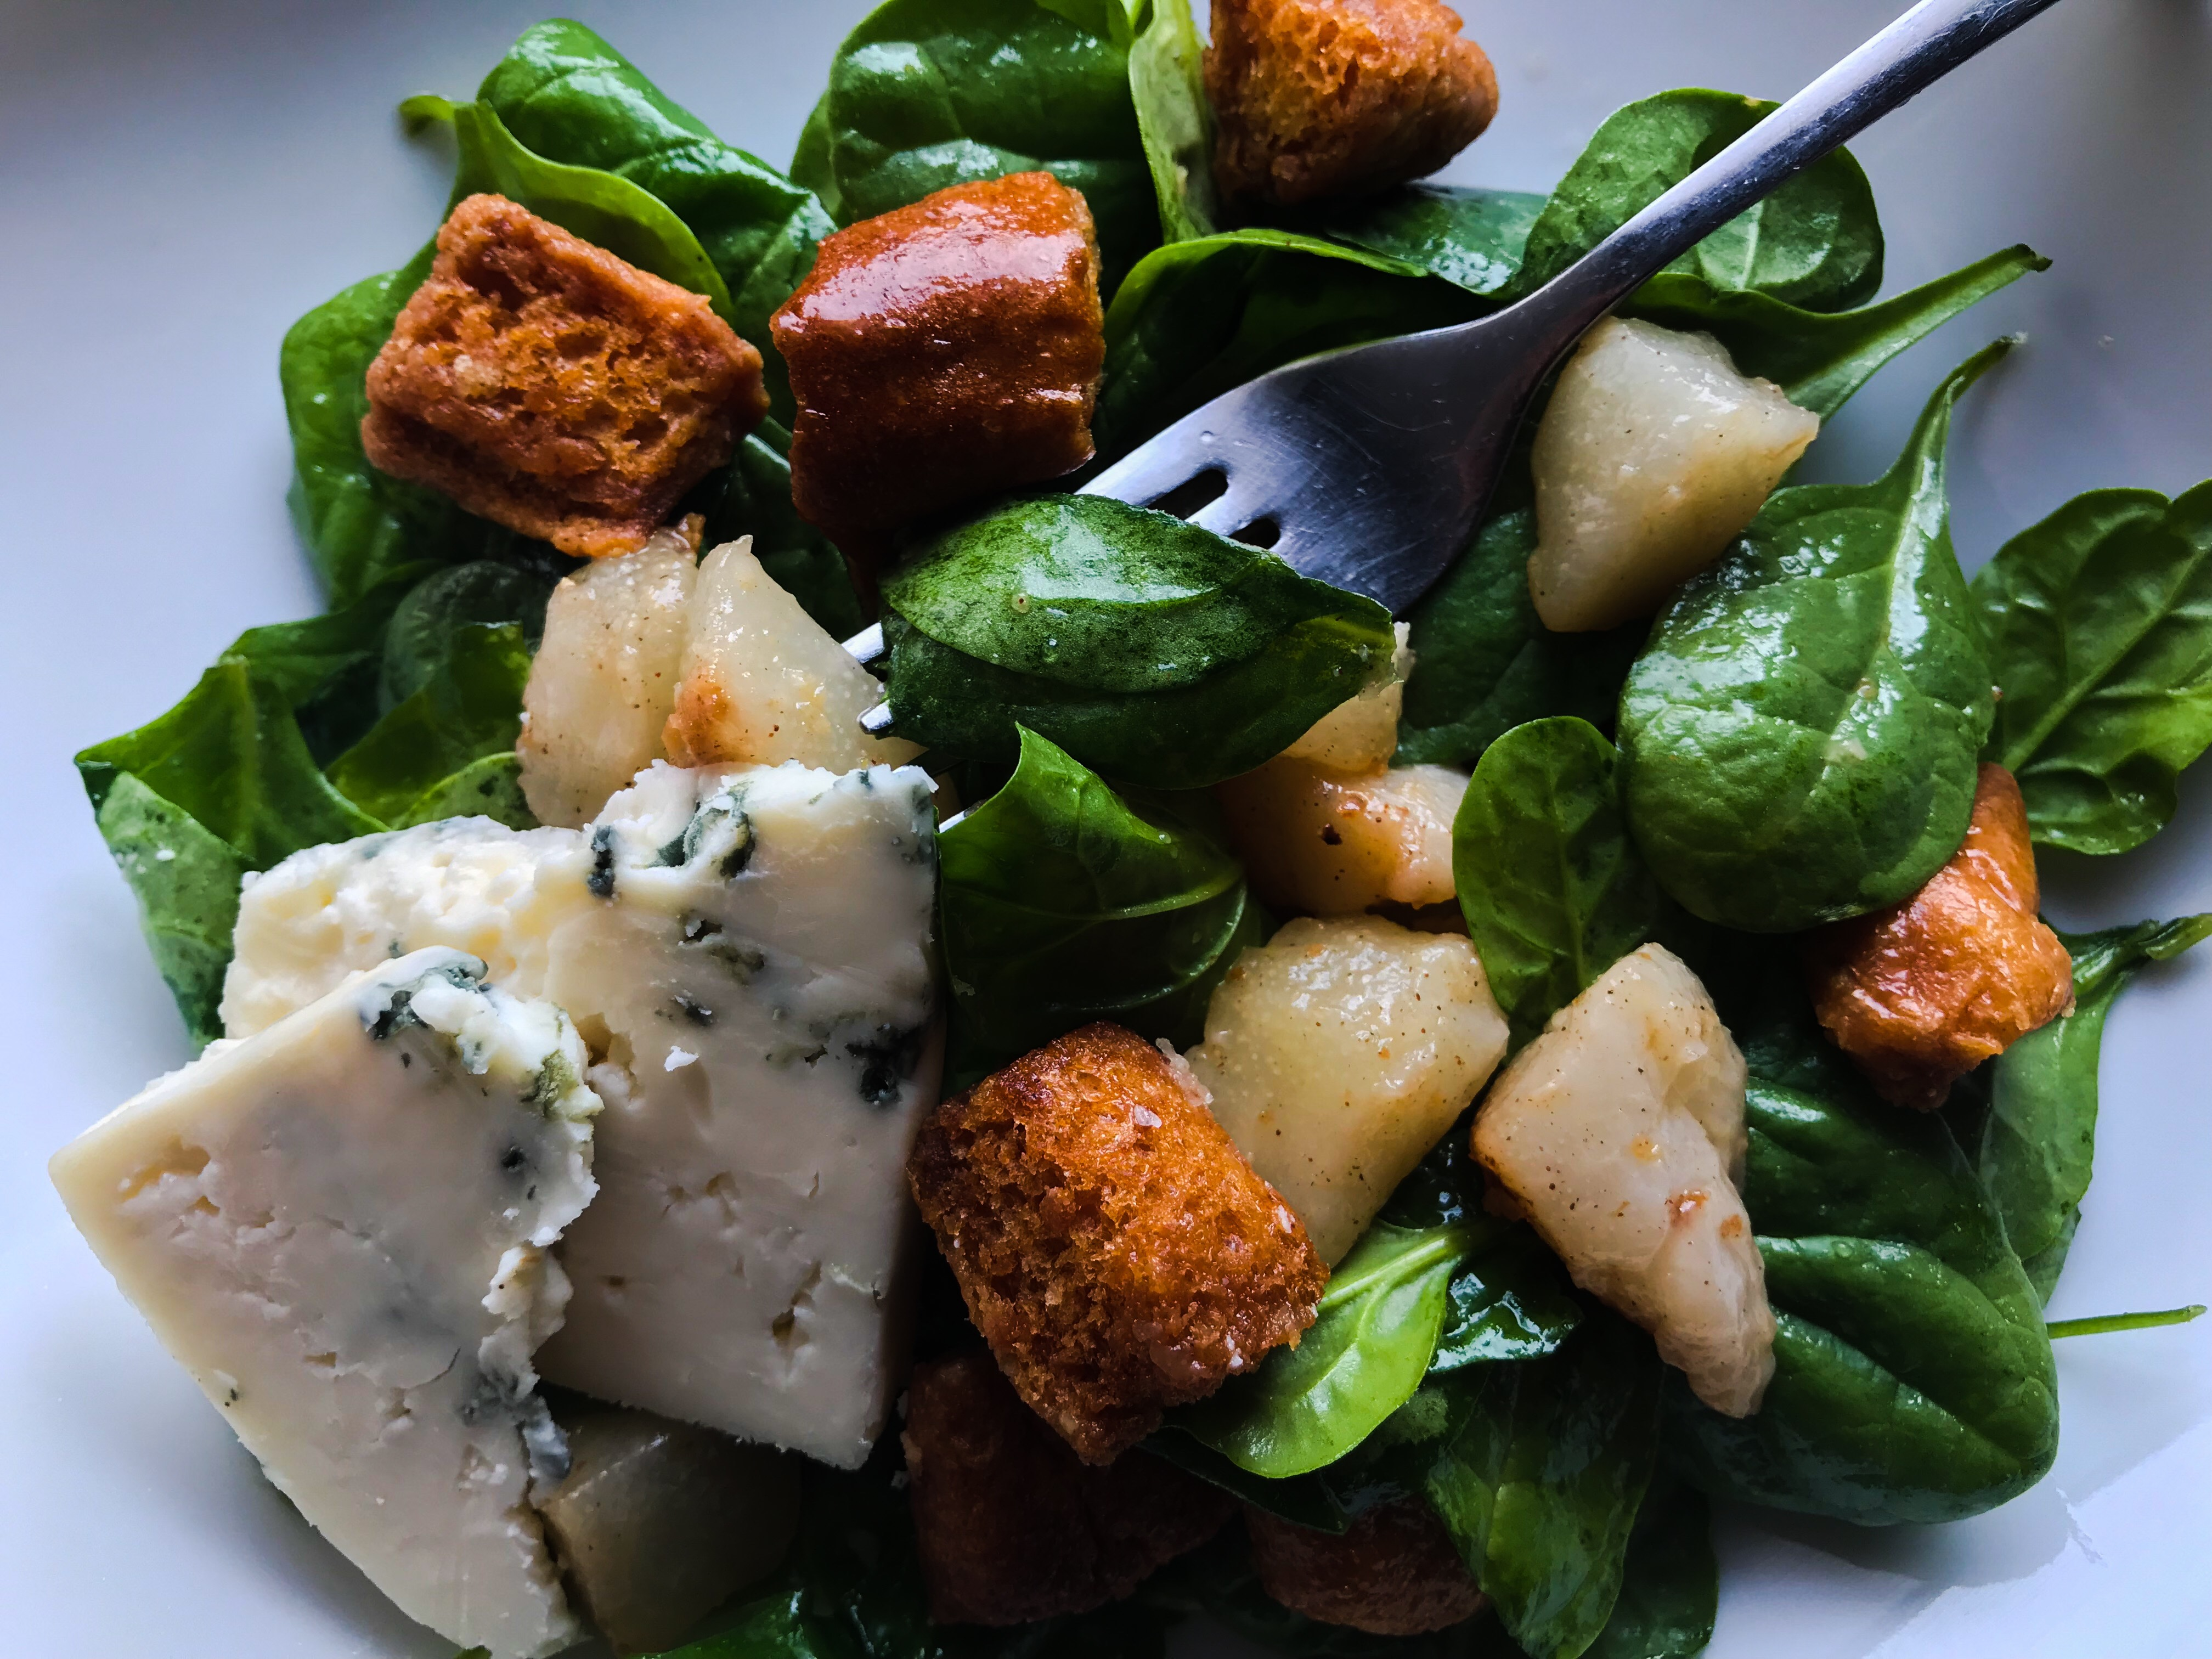 Roasted Pears and Greens